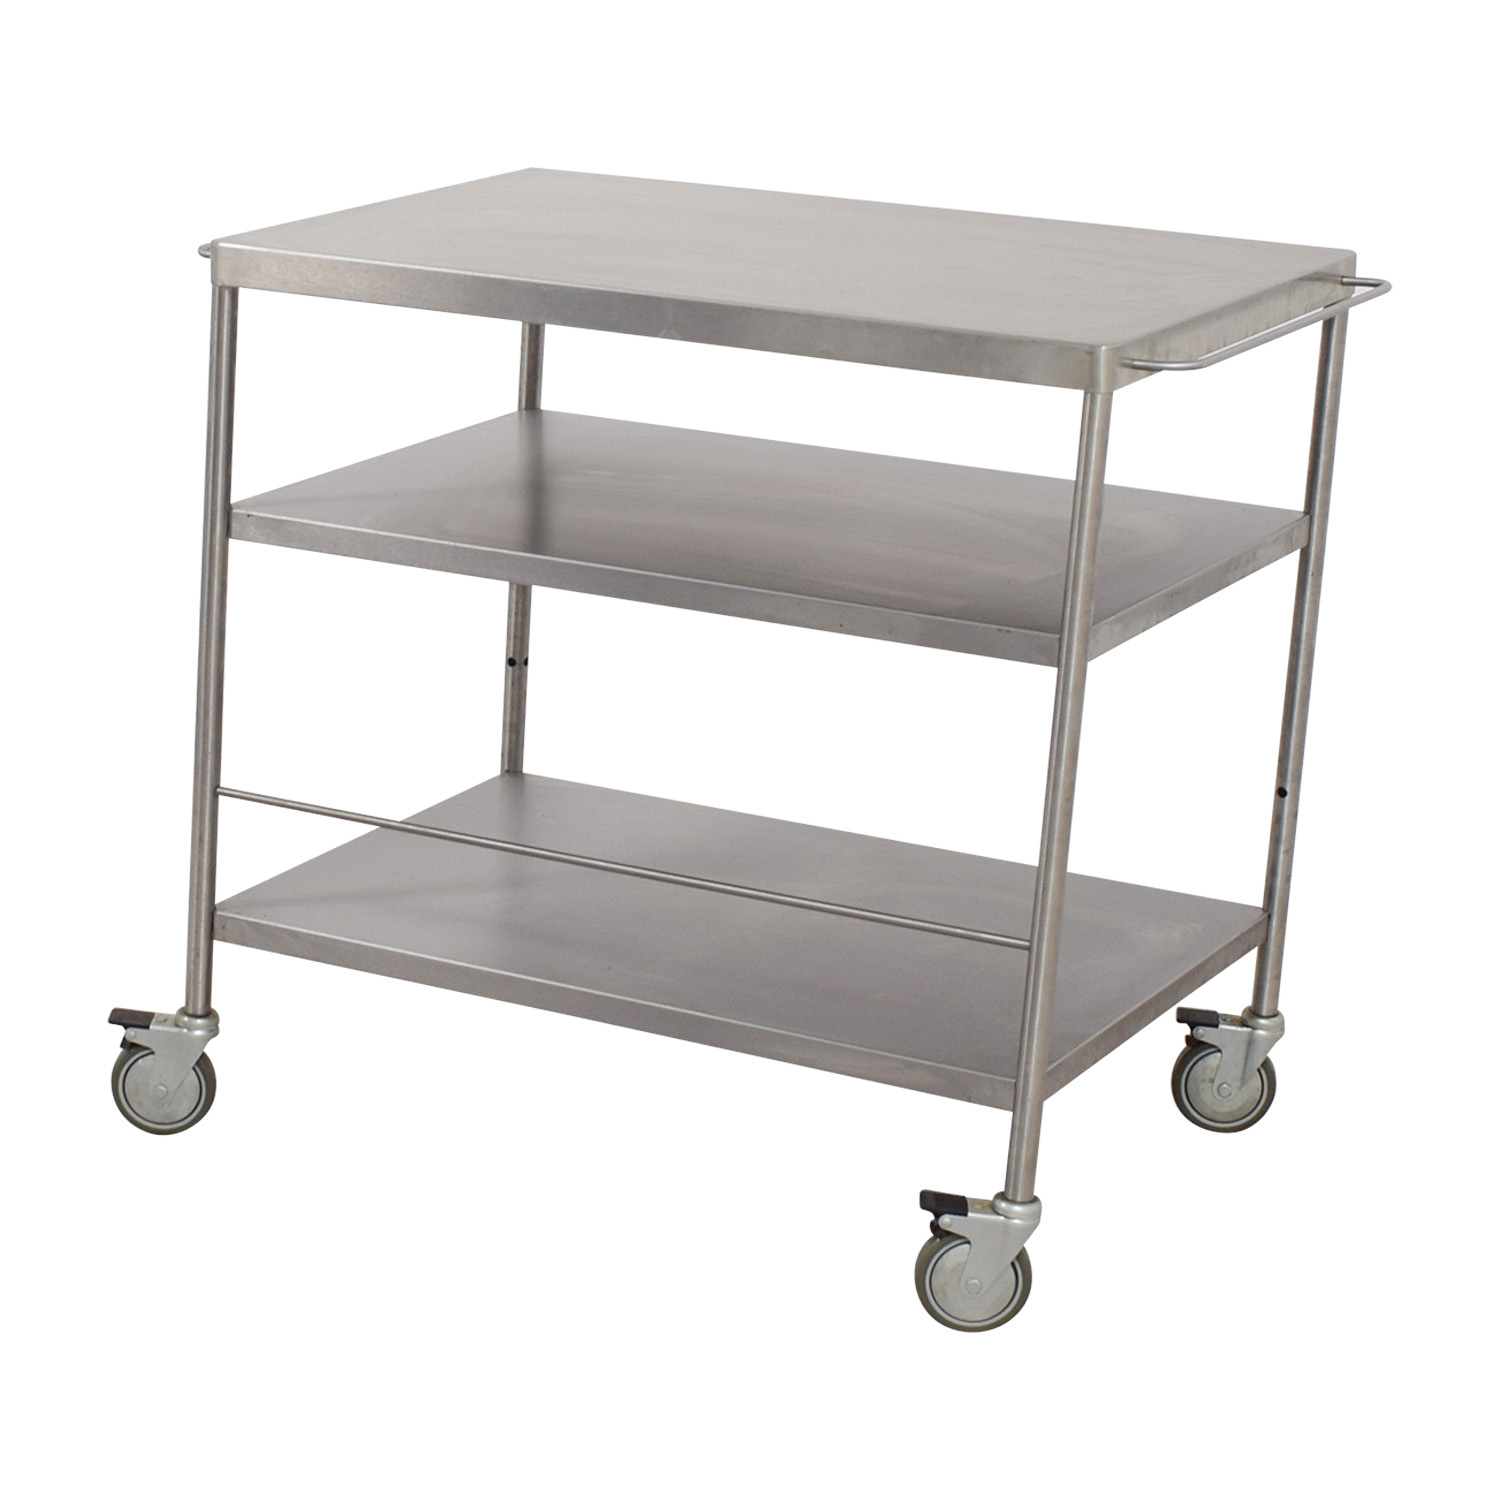 Stainless Steel Utility Cart price